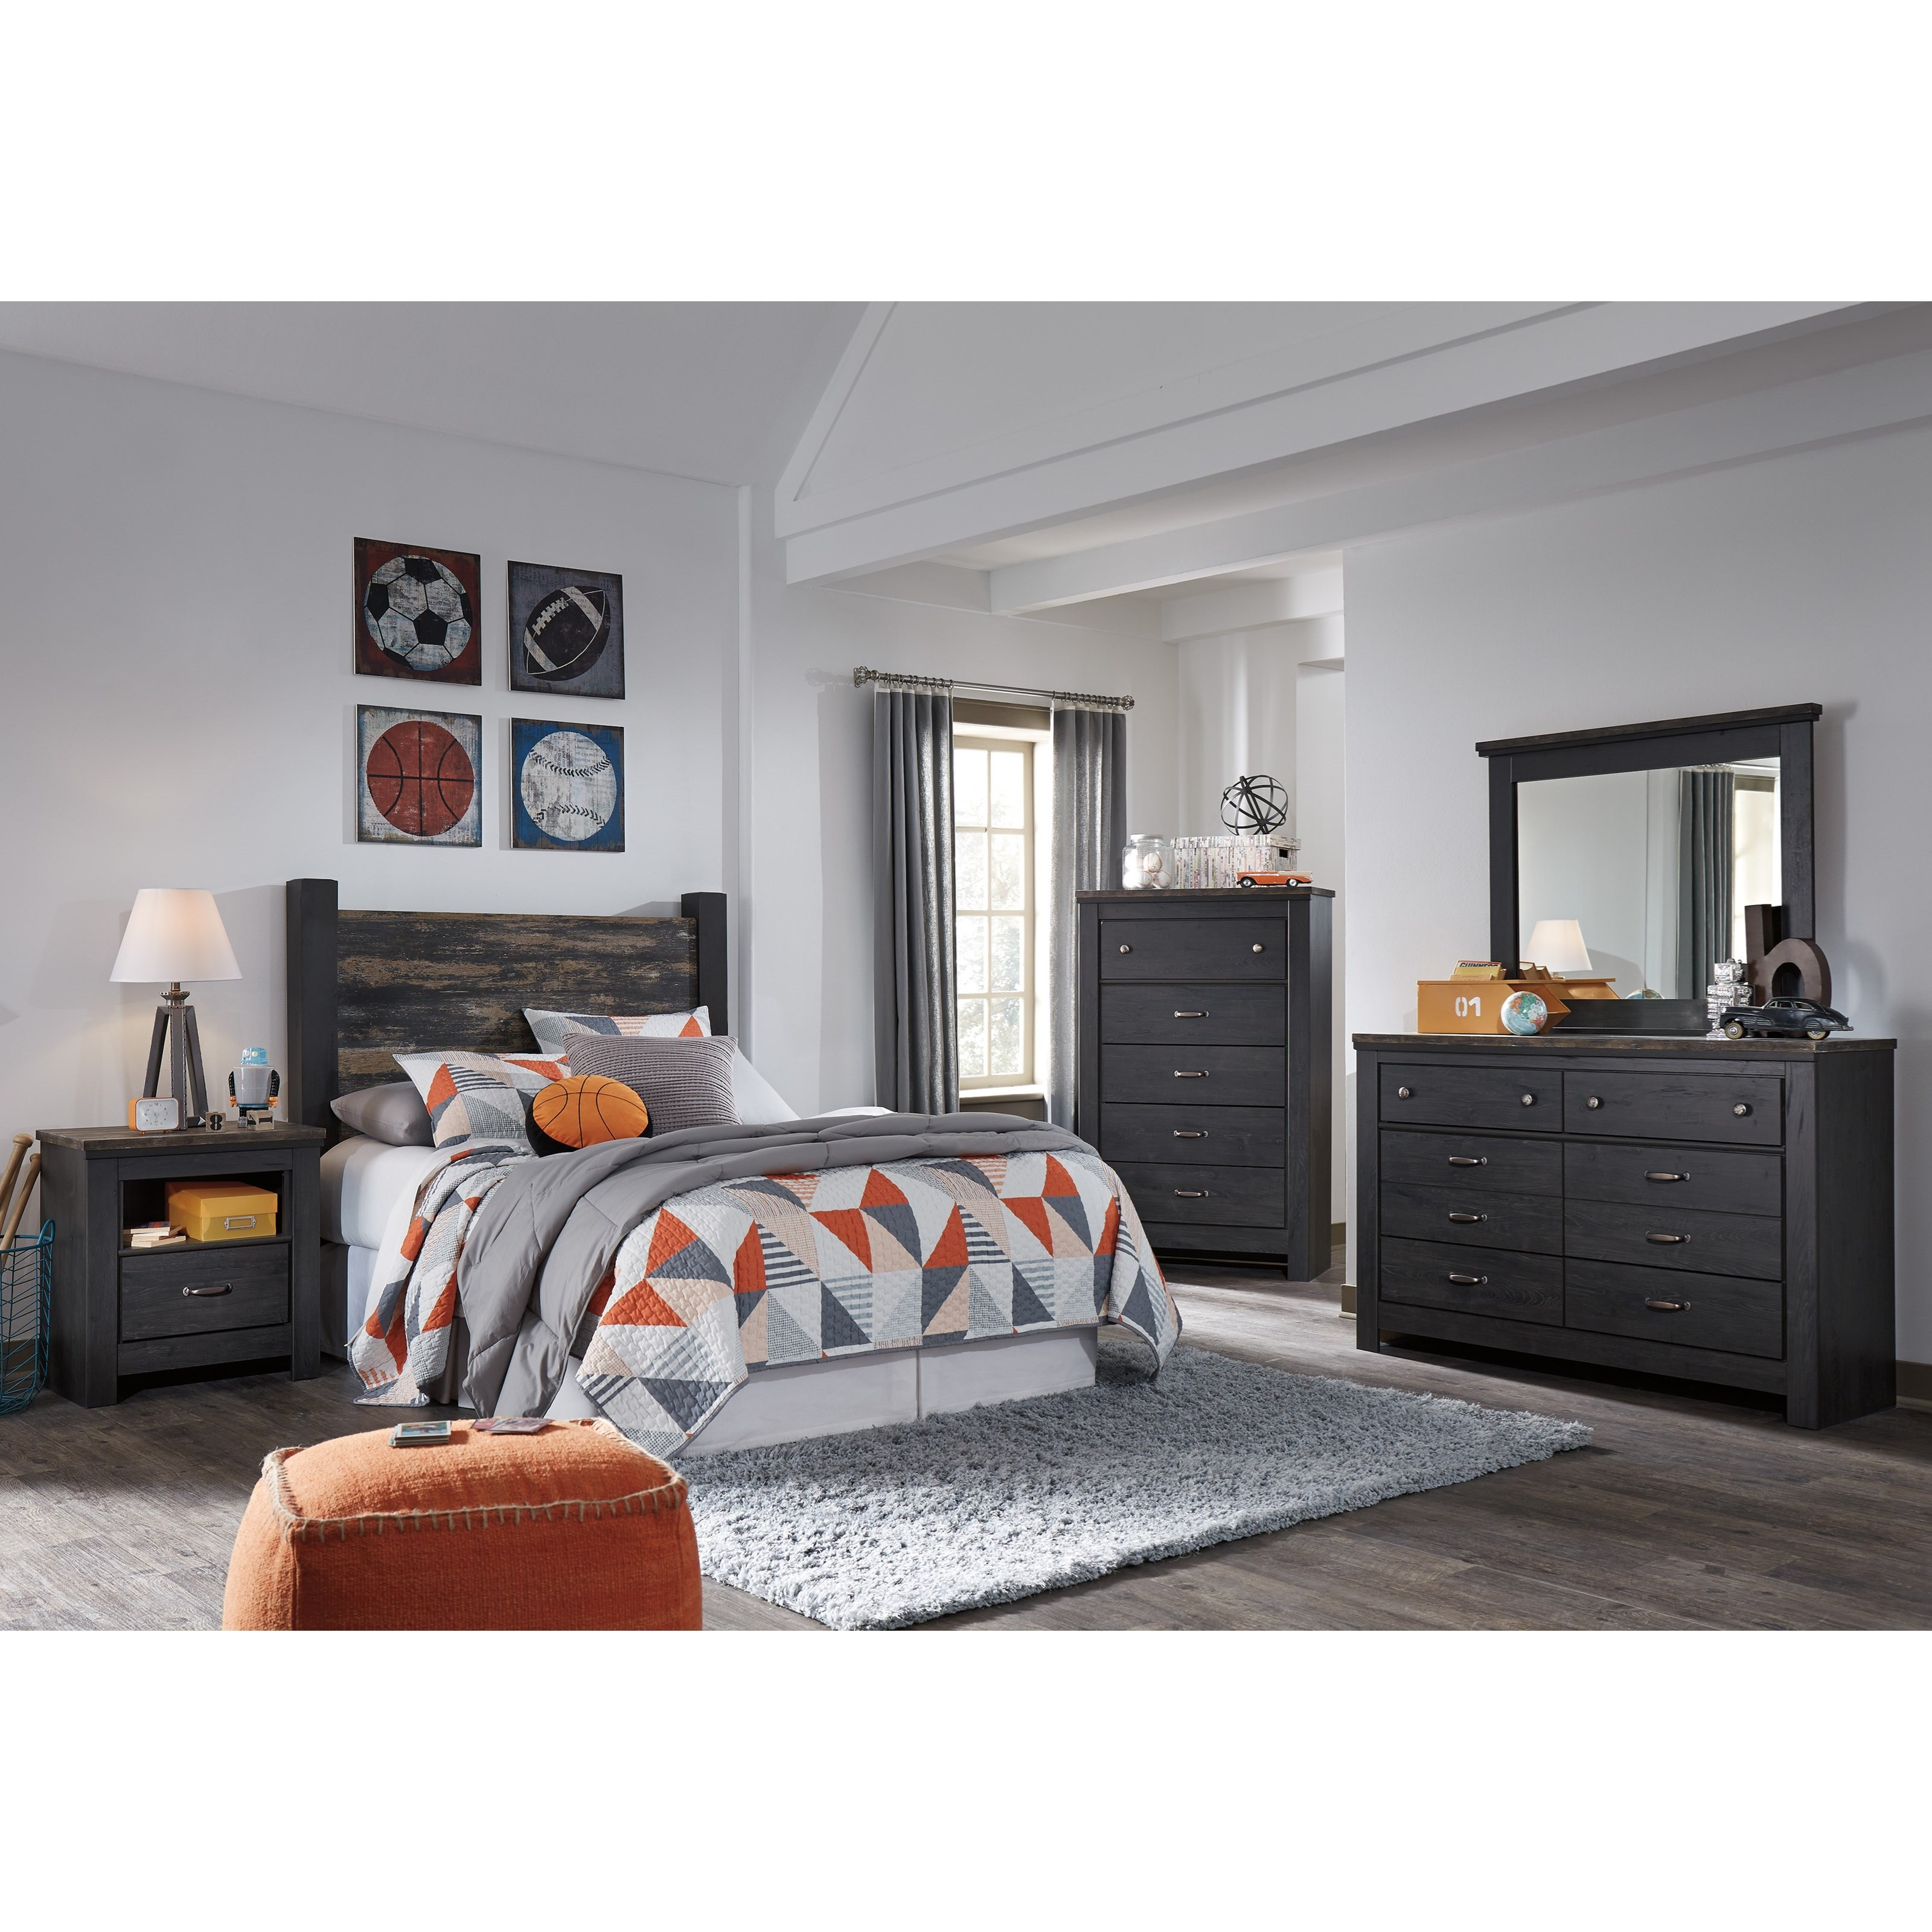 Ashley signature design westinton full bedroom group for Bedroom furniture groups